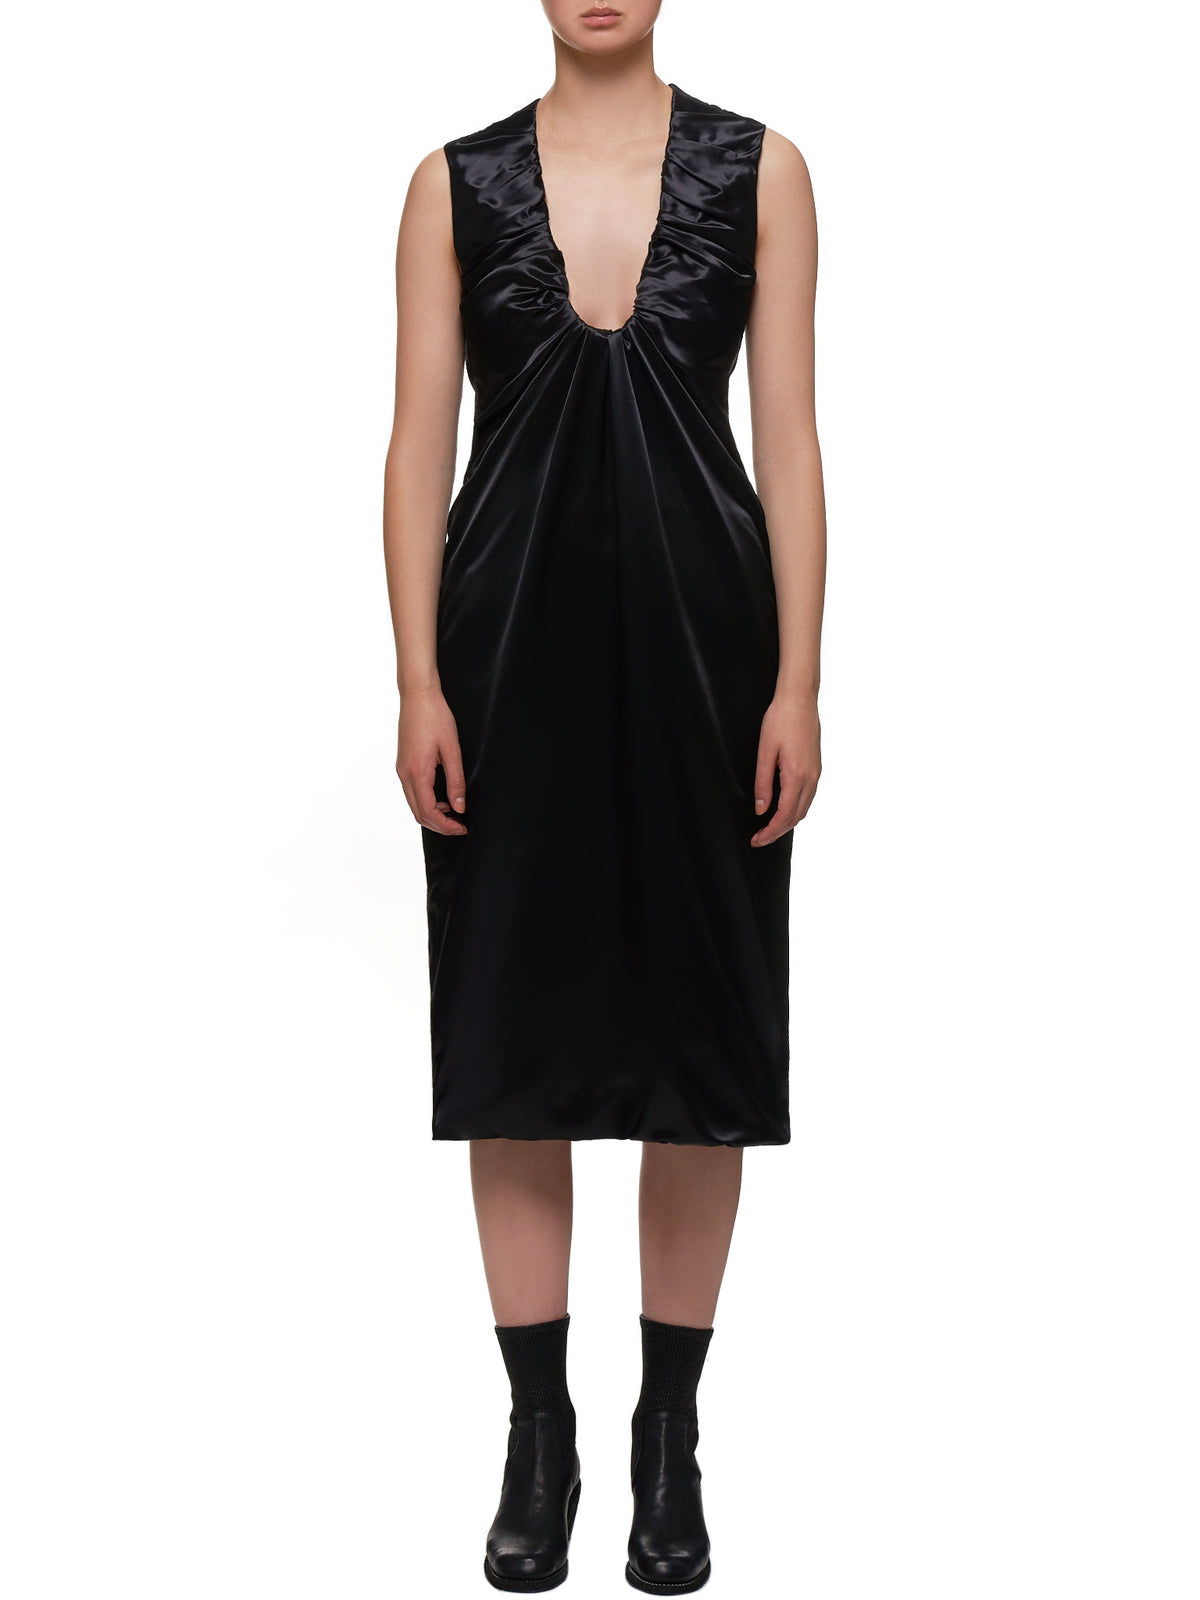 Bottega Veneta Dress - Hlorenzo Front